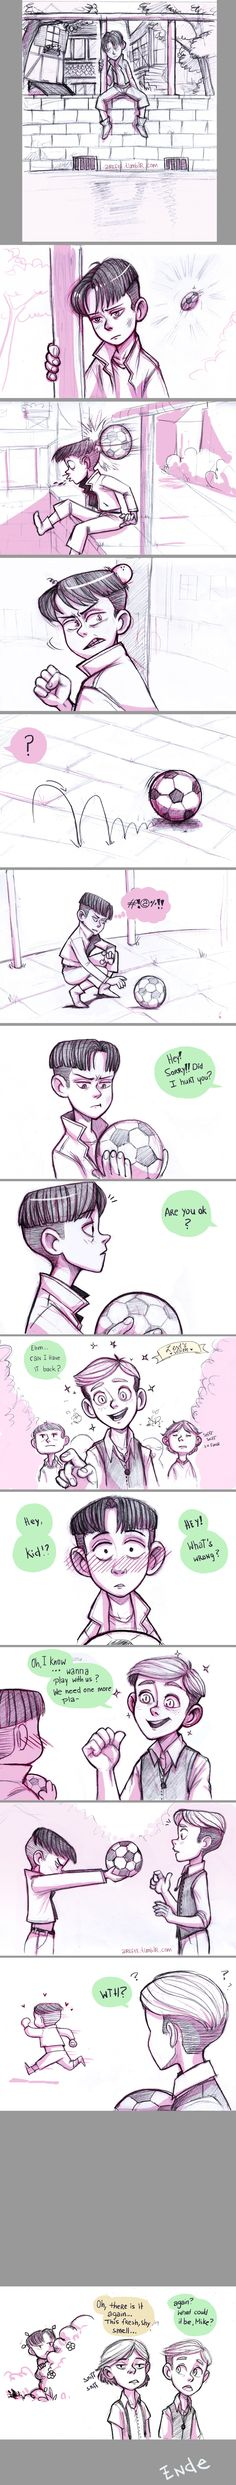 Shy Levi by airefee.deviantart.com on @DeviantArt << LITTLE LEVI YOUR TOO CUTE!! T-T